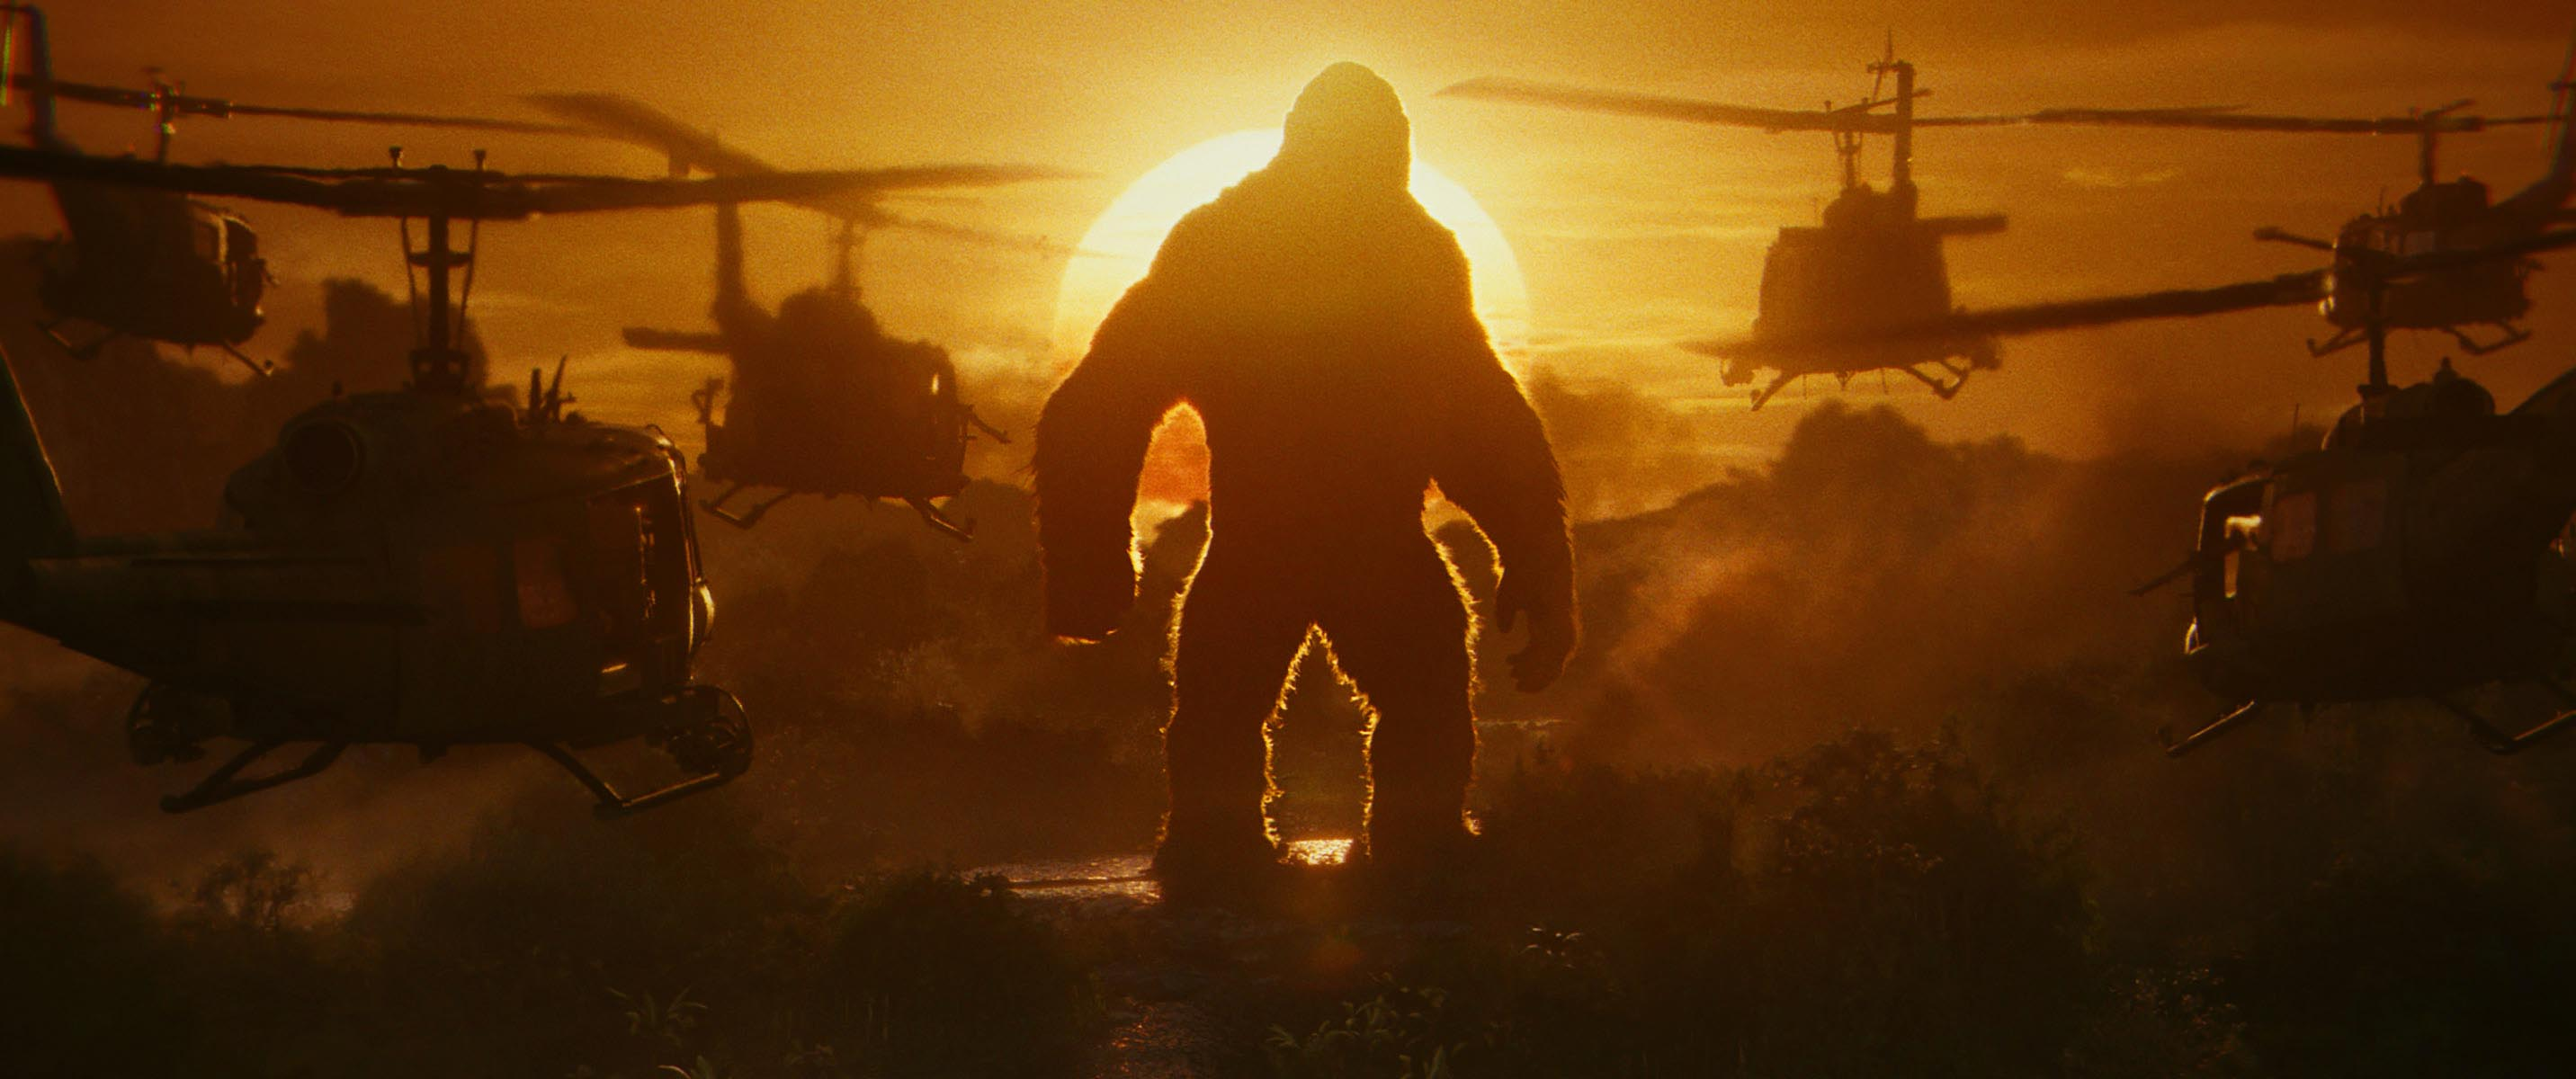 Kong skull island soundtrack on cd - But Overall The Pacing And Building Of Human Characters Is Where This Movie Falls Somewhat Short Even With That However The Effects Aesthetic Music And